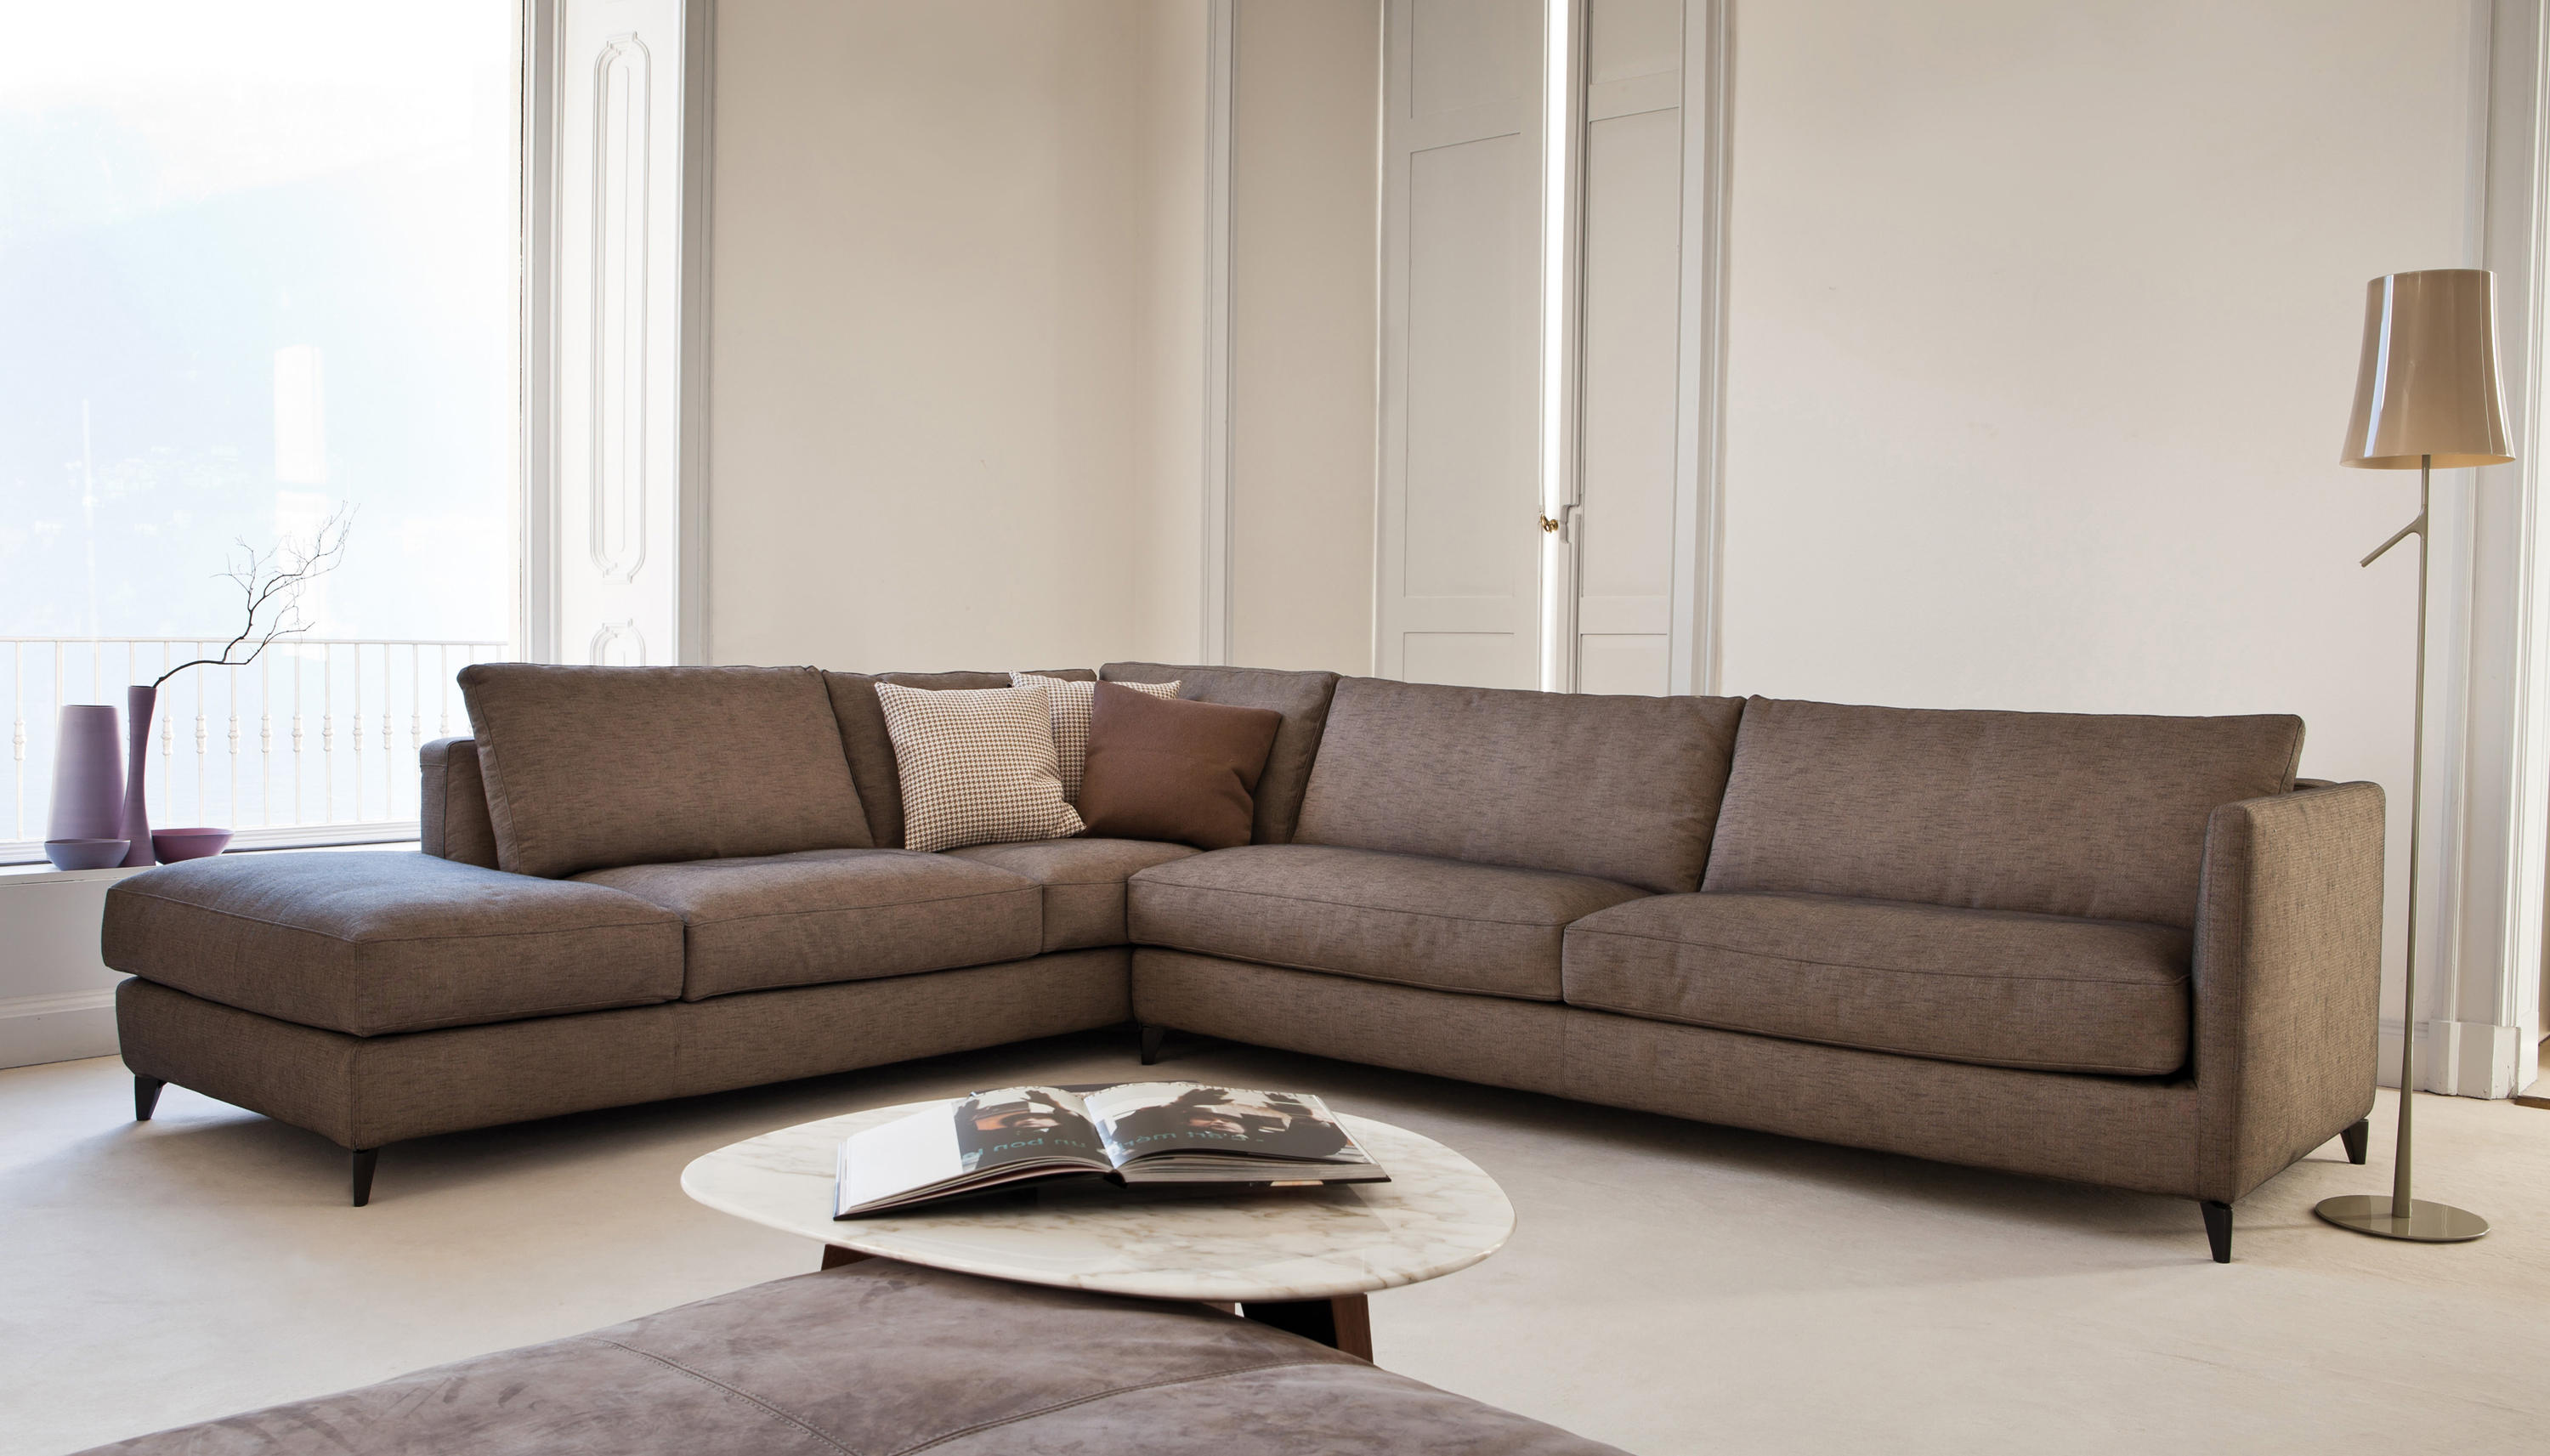 Home Zone Sofa Zone 940 Comfort Xl Sofa Sofas From Vibieffe Architonic